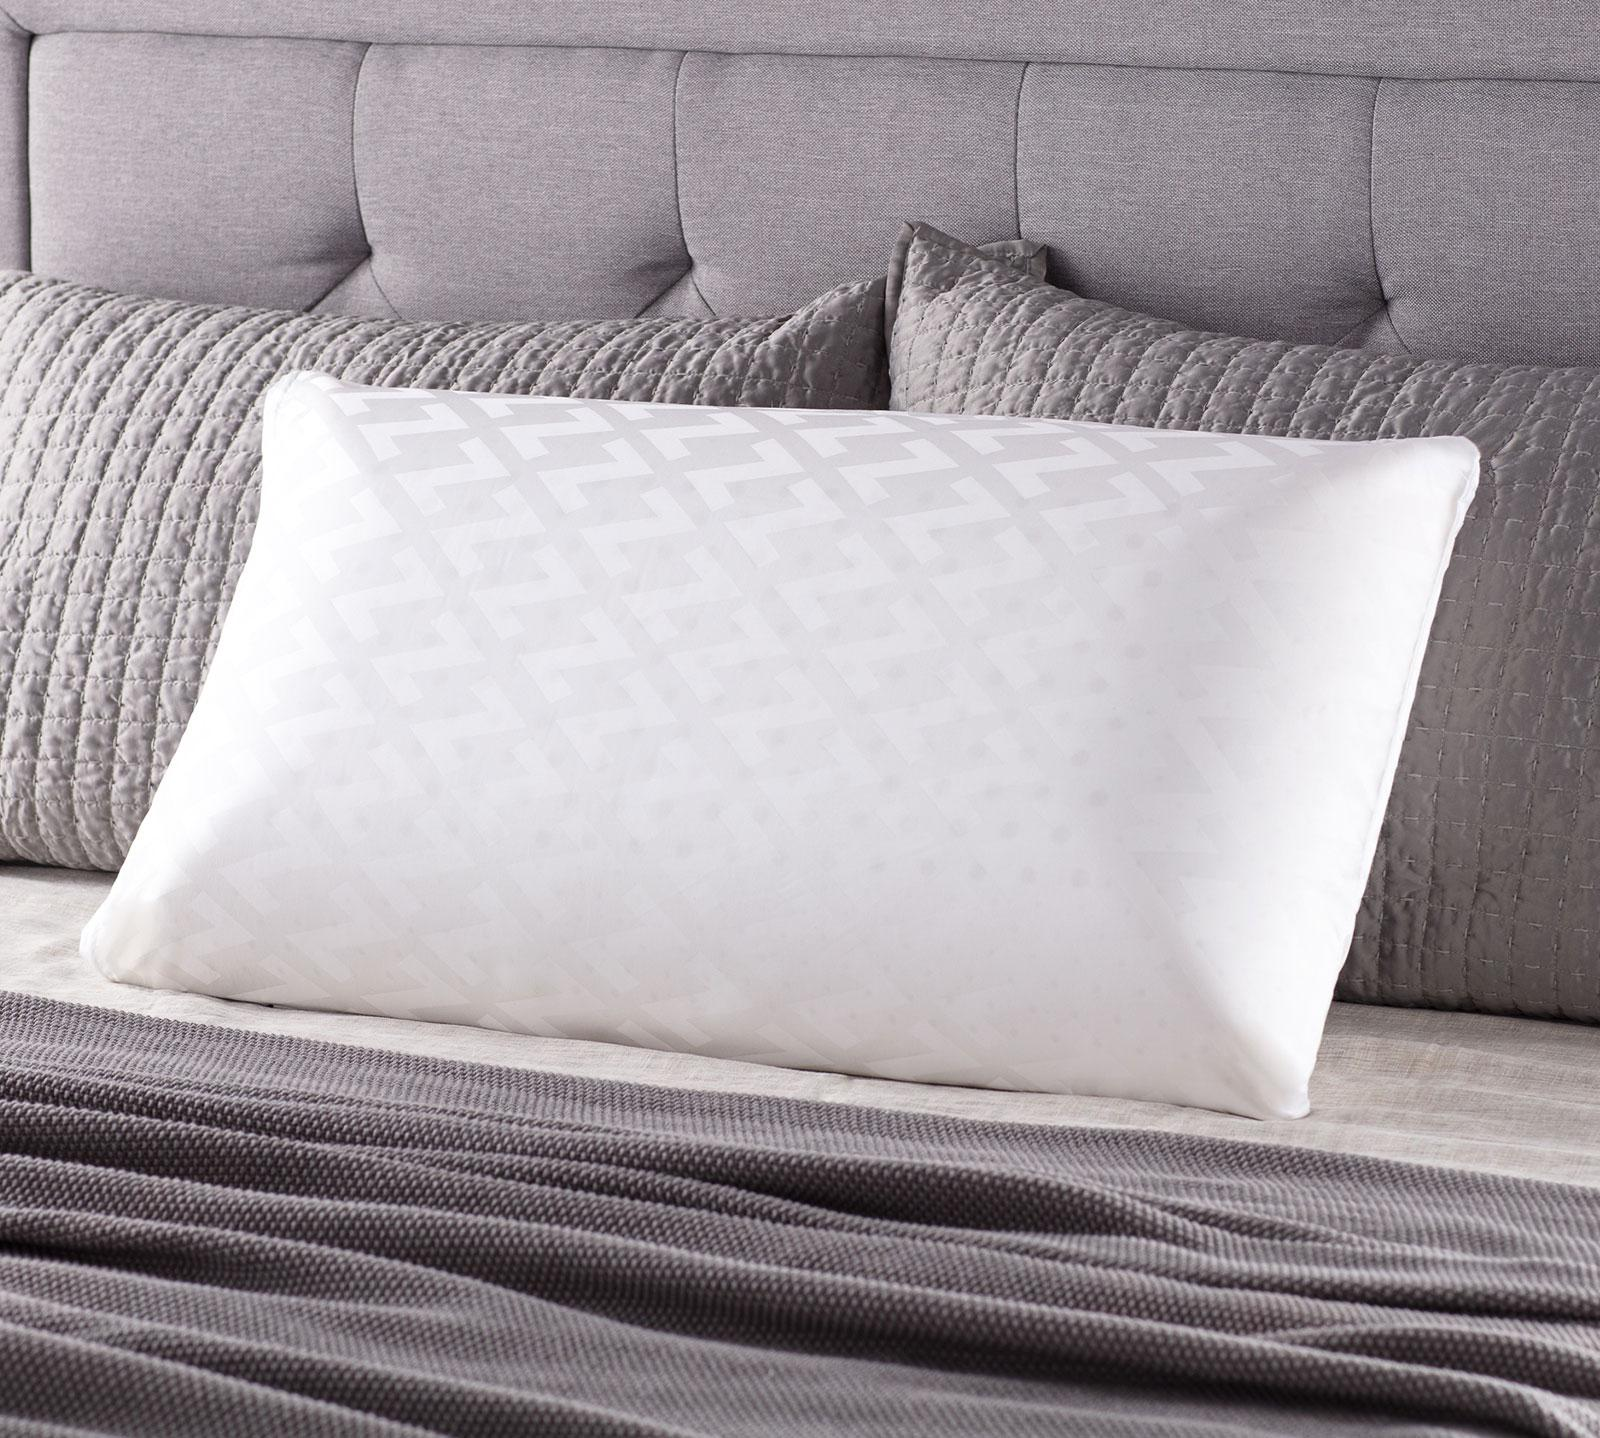 aerobreathe pillow memory inch infused elegant comforpedic reactive gel loft vidafino foam of